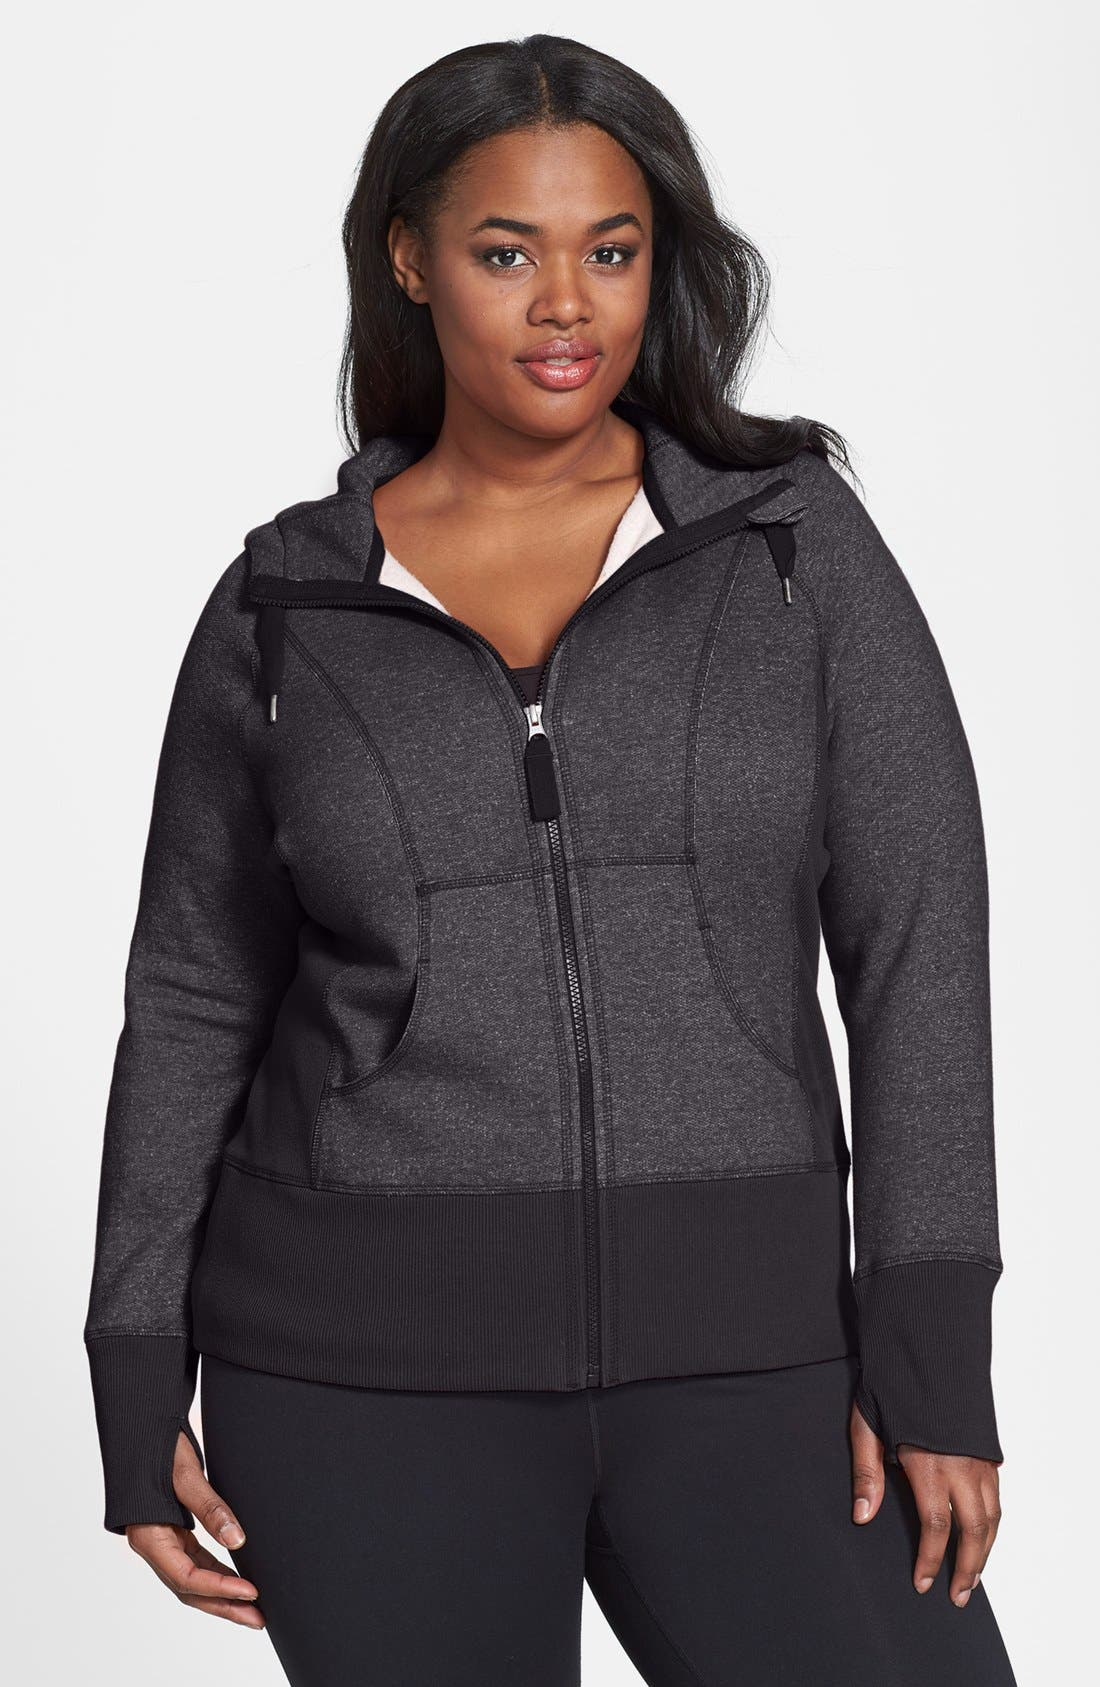 Alternate Image 1 Selected - Zella 'Essential' Hoodie (Plus Size)